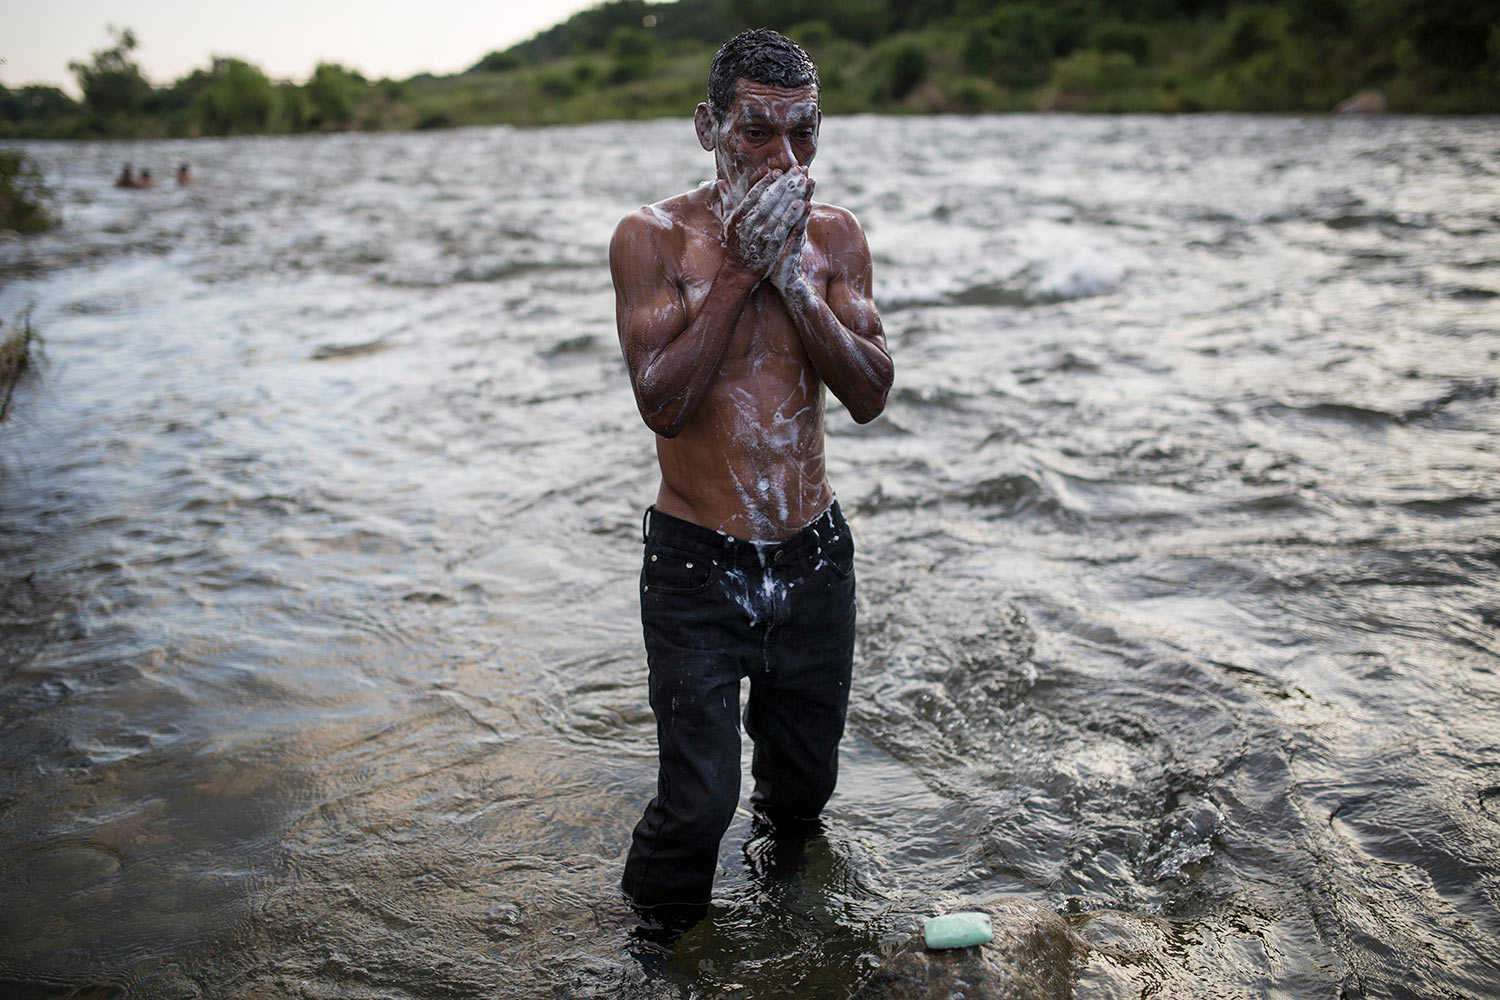 A Honduran migrant takes a bath in a river in Pijijiapan, Mexico, Thursday, Oct. 25, 2018. (AP Photo/Rodrigo Abd)